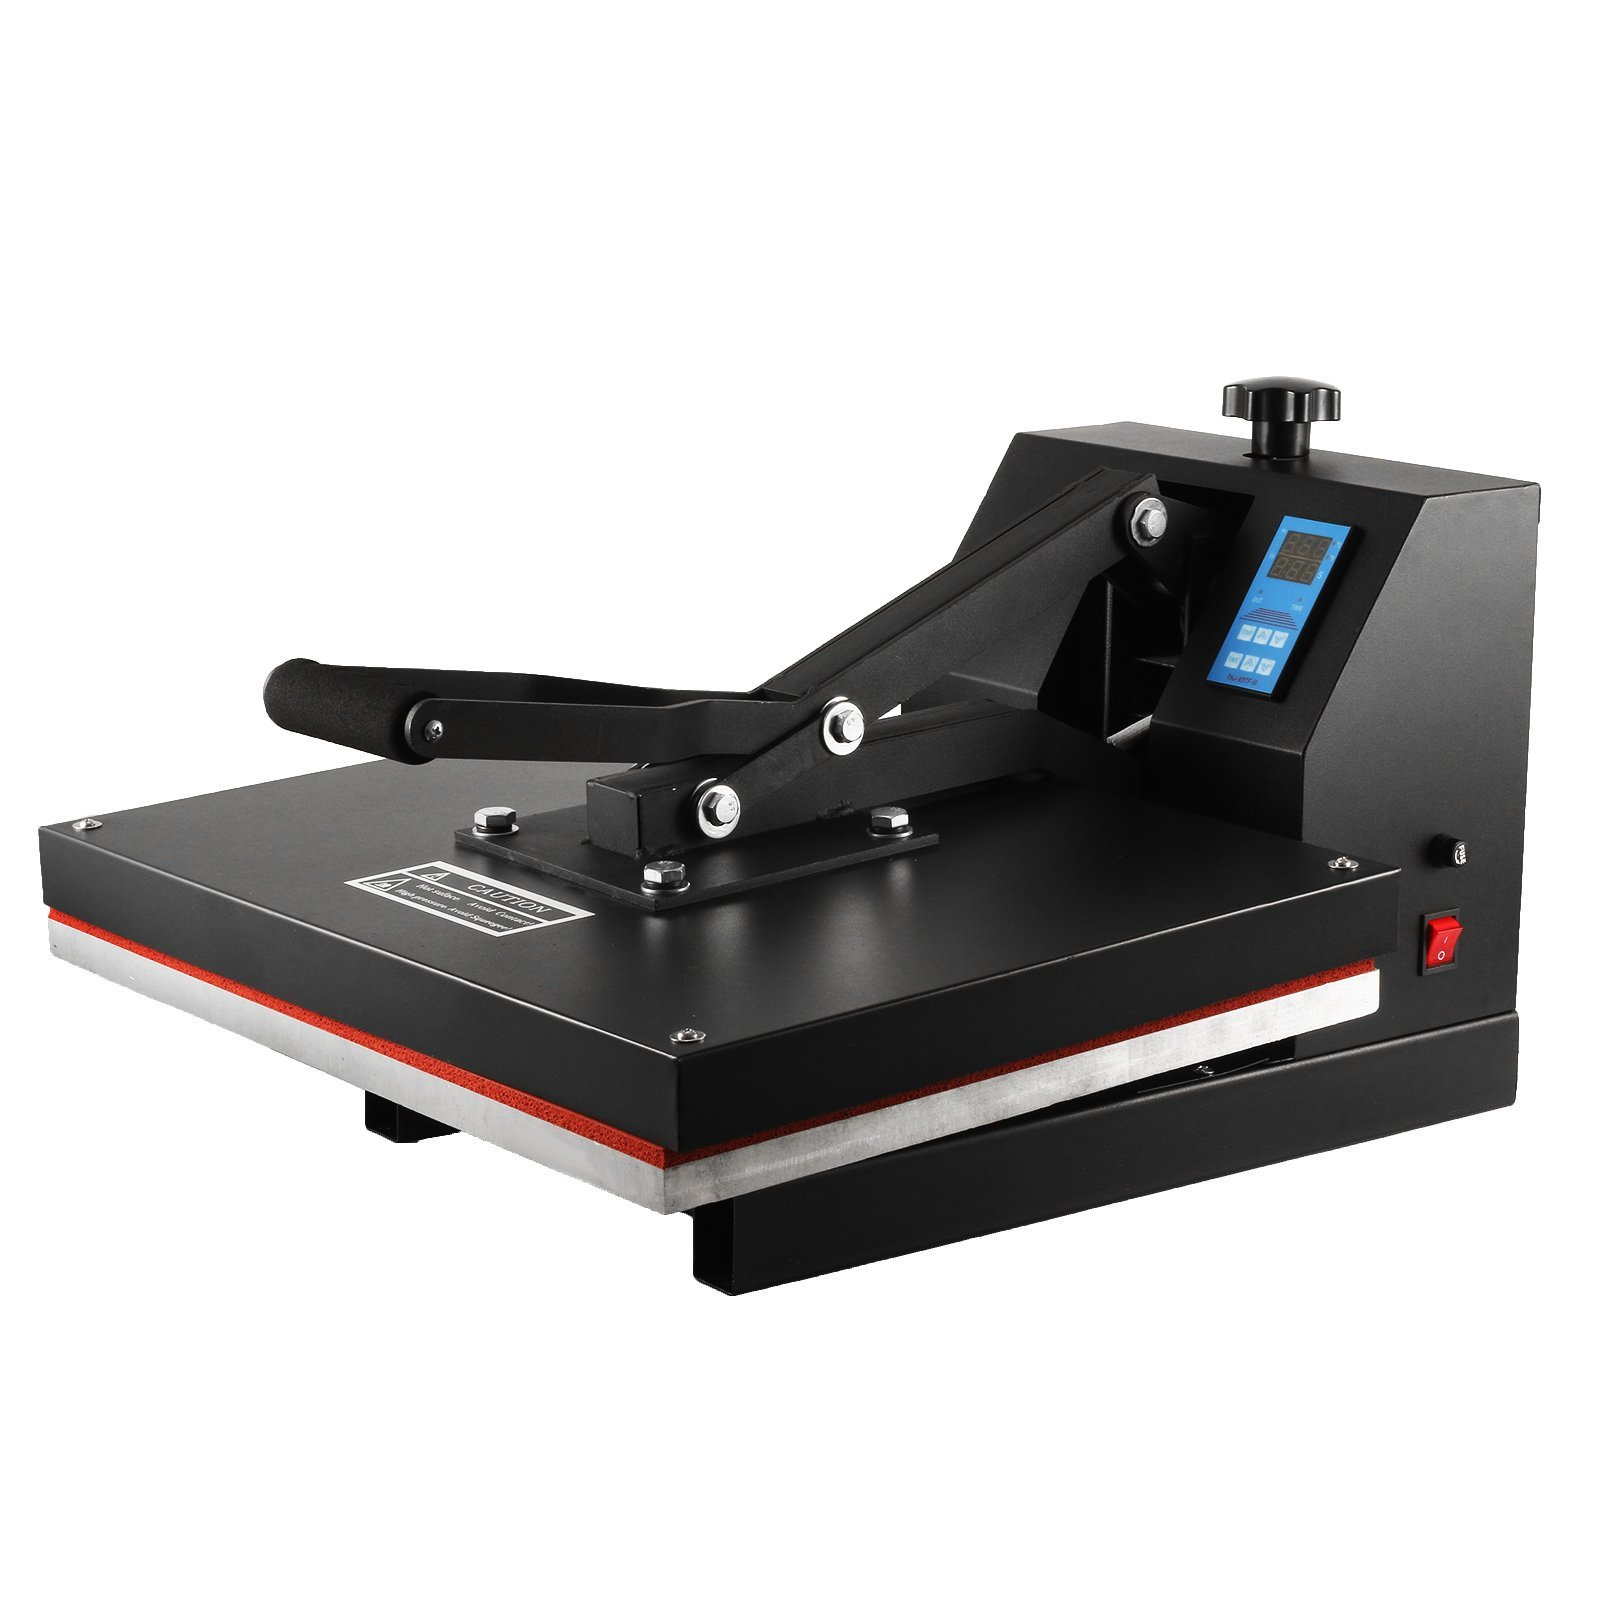 VEVOR Digital Clamshell High Pressure Heat Press Machine for T-Shirts, LCD Display Heavy Duty Commercial-Grade, 1700 W by VEVOR